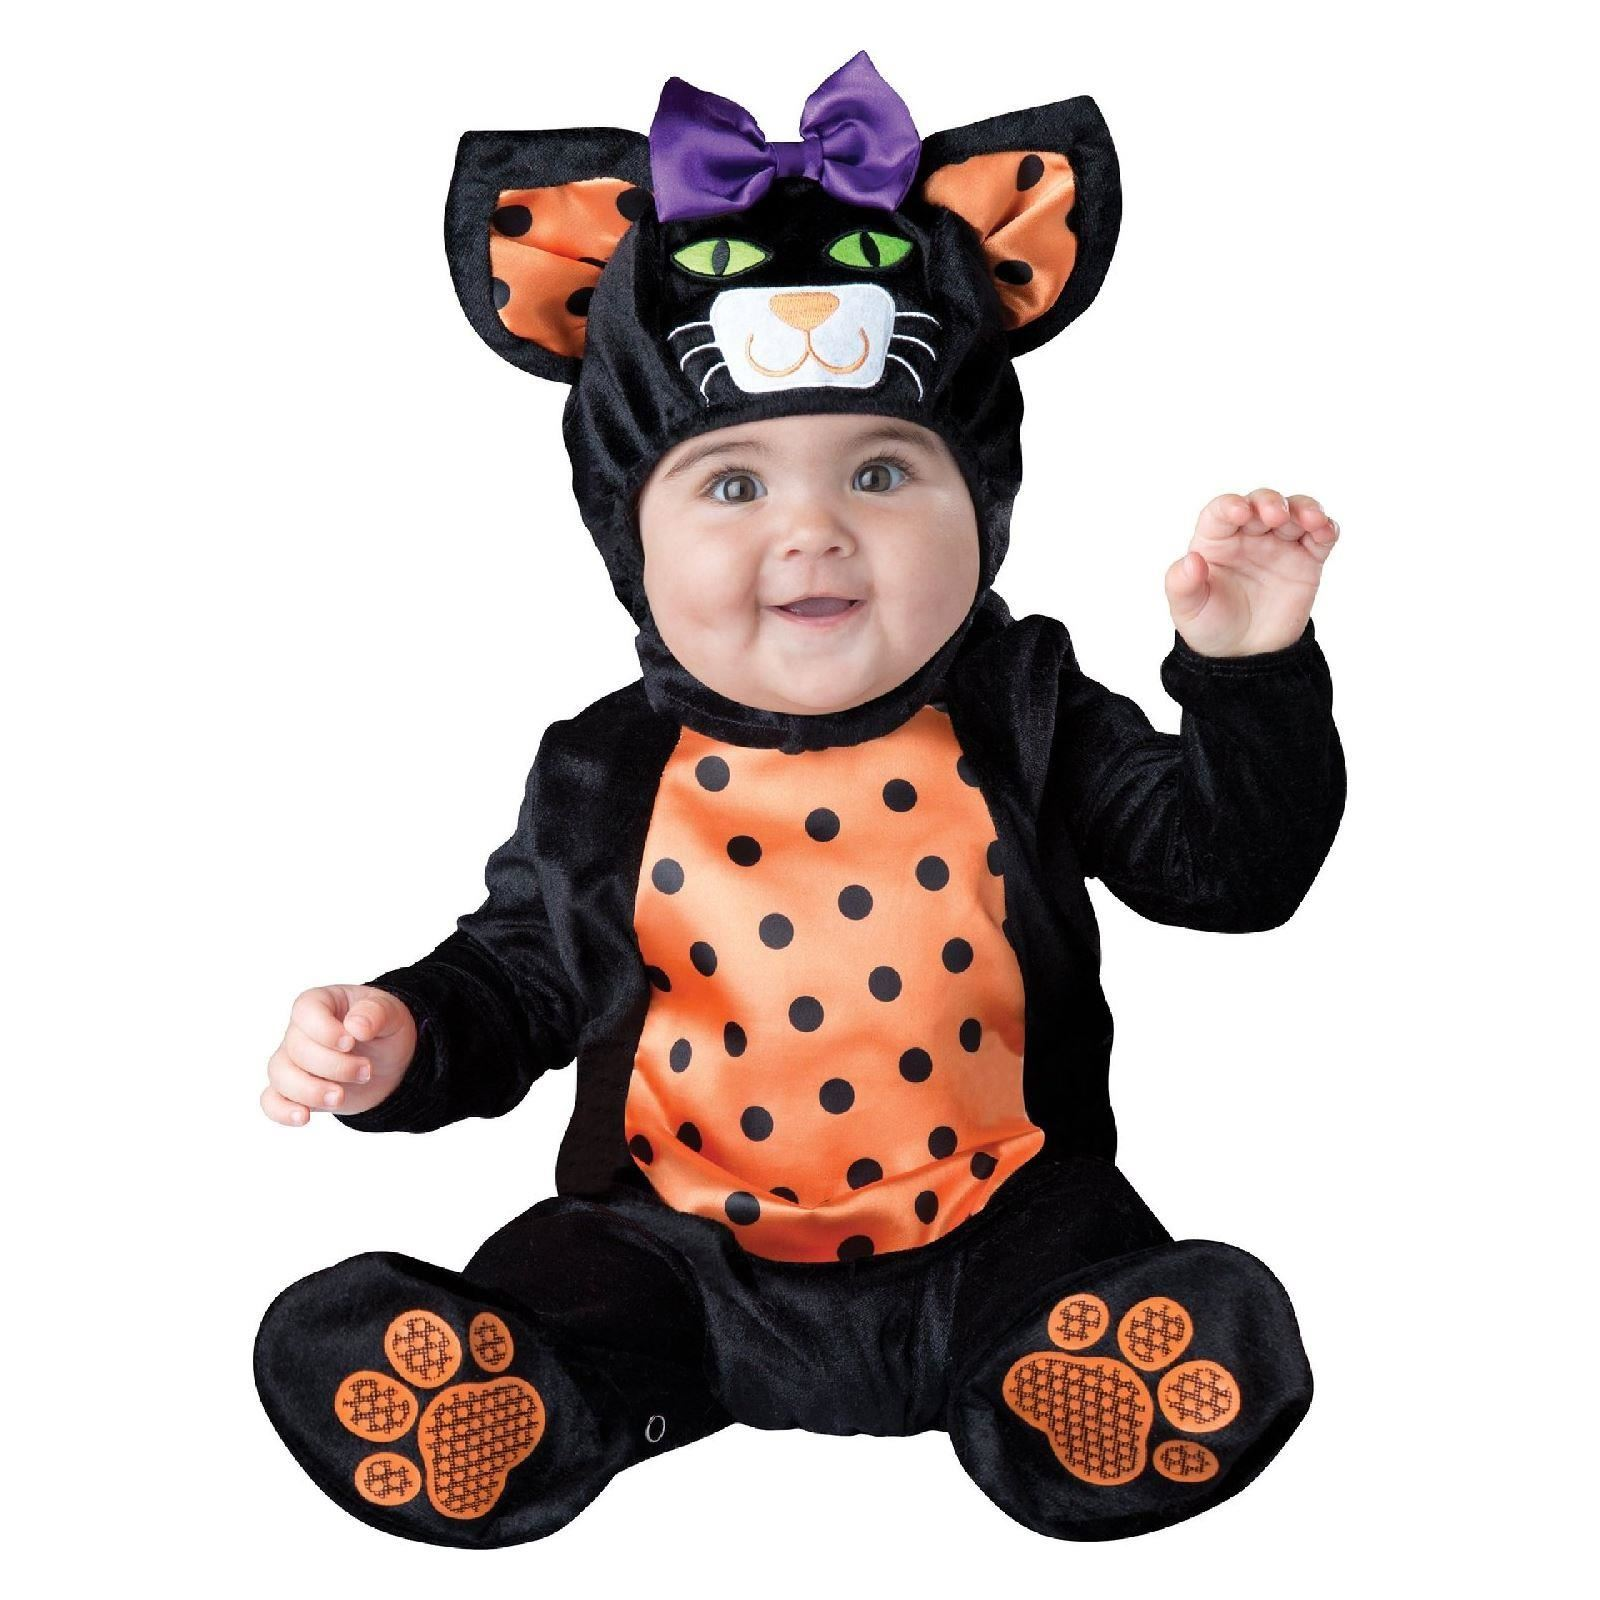 baby babies toddler halloween witch vampire babygrow fancy dress outfit costume ebay. Black Bedroom Furniture Sets. Home Design Ideas